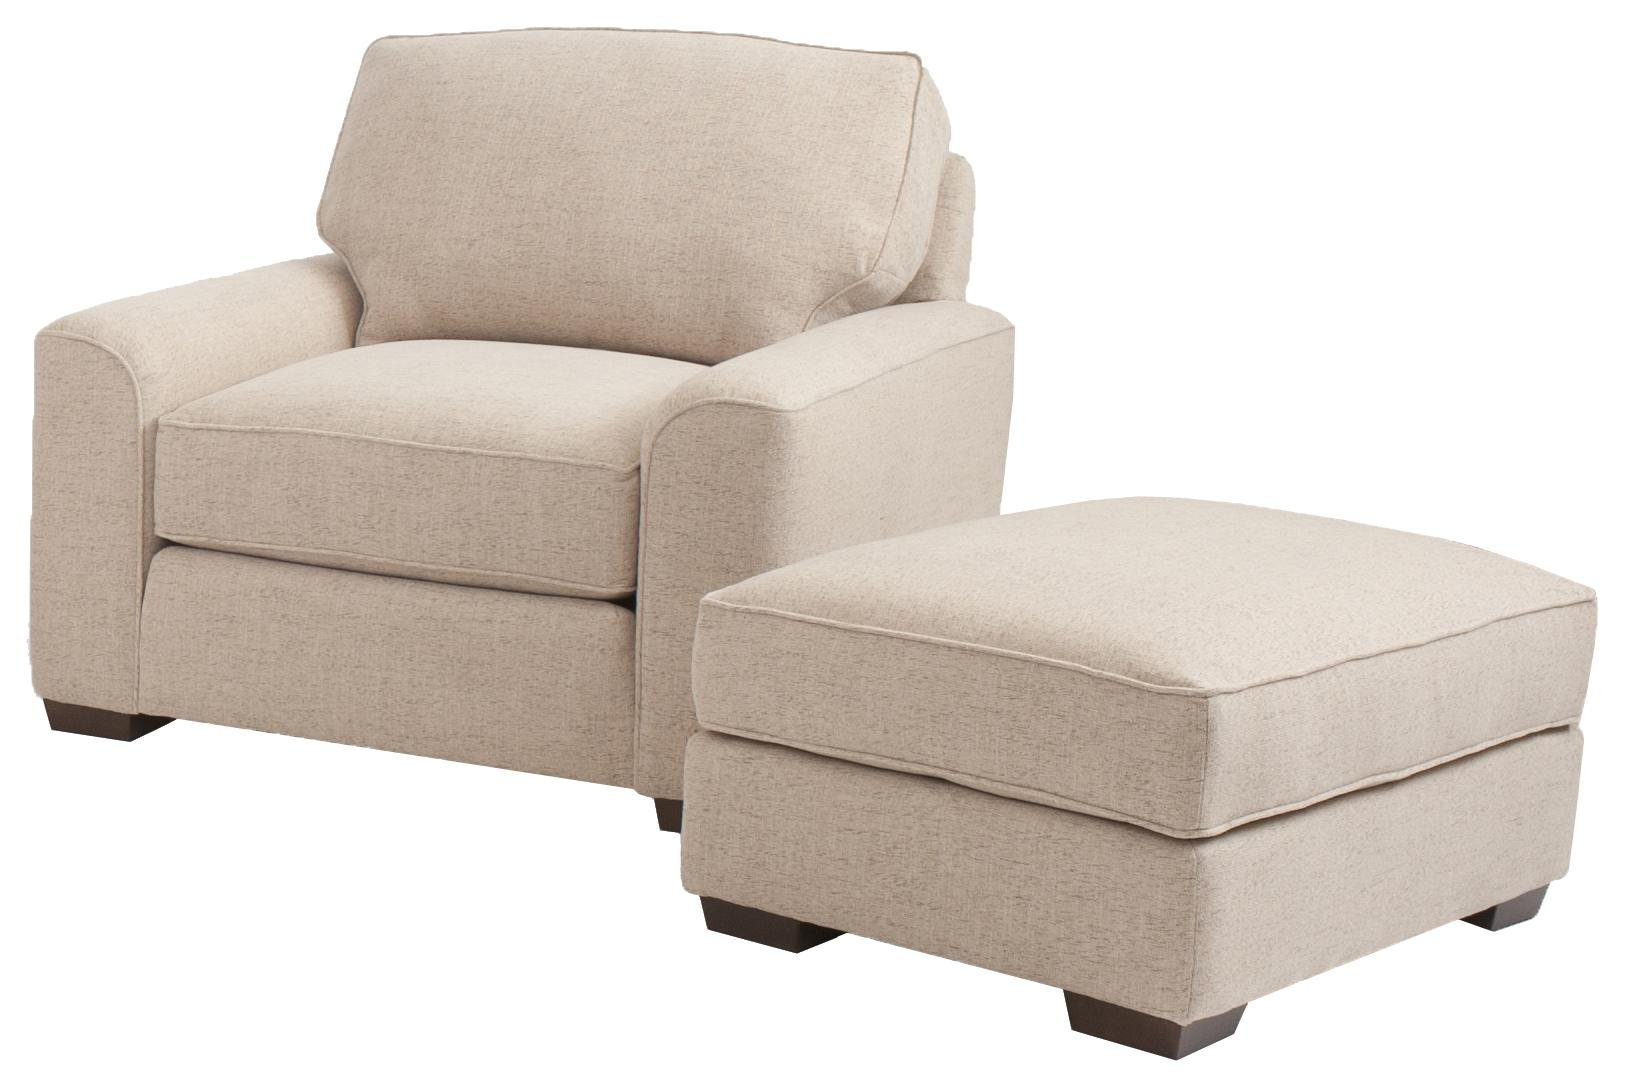 retro styled chair and ottoman set by smith brothers | wolf and